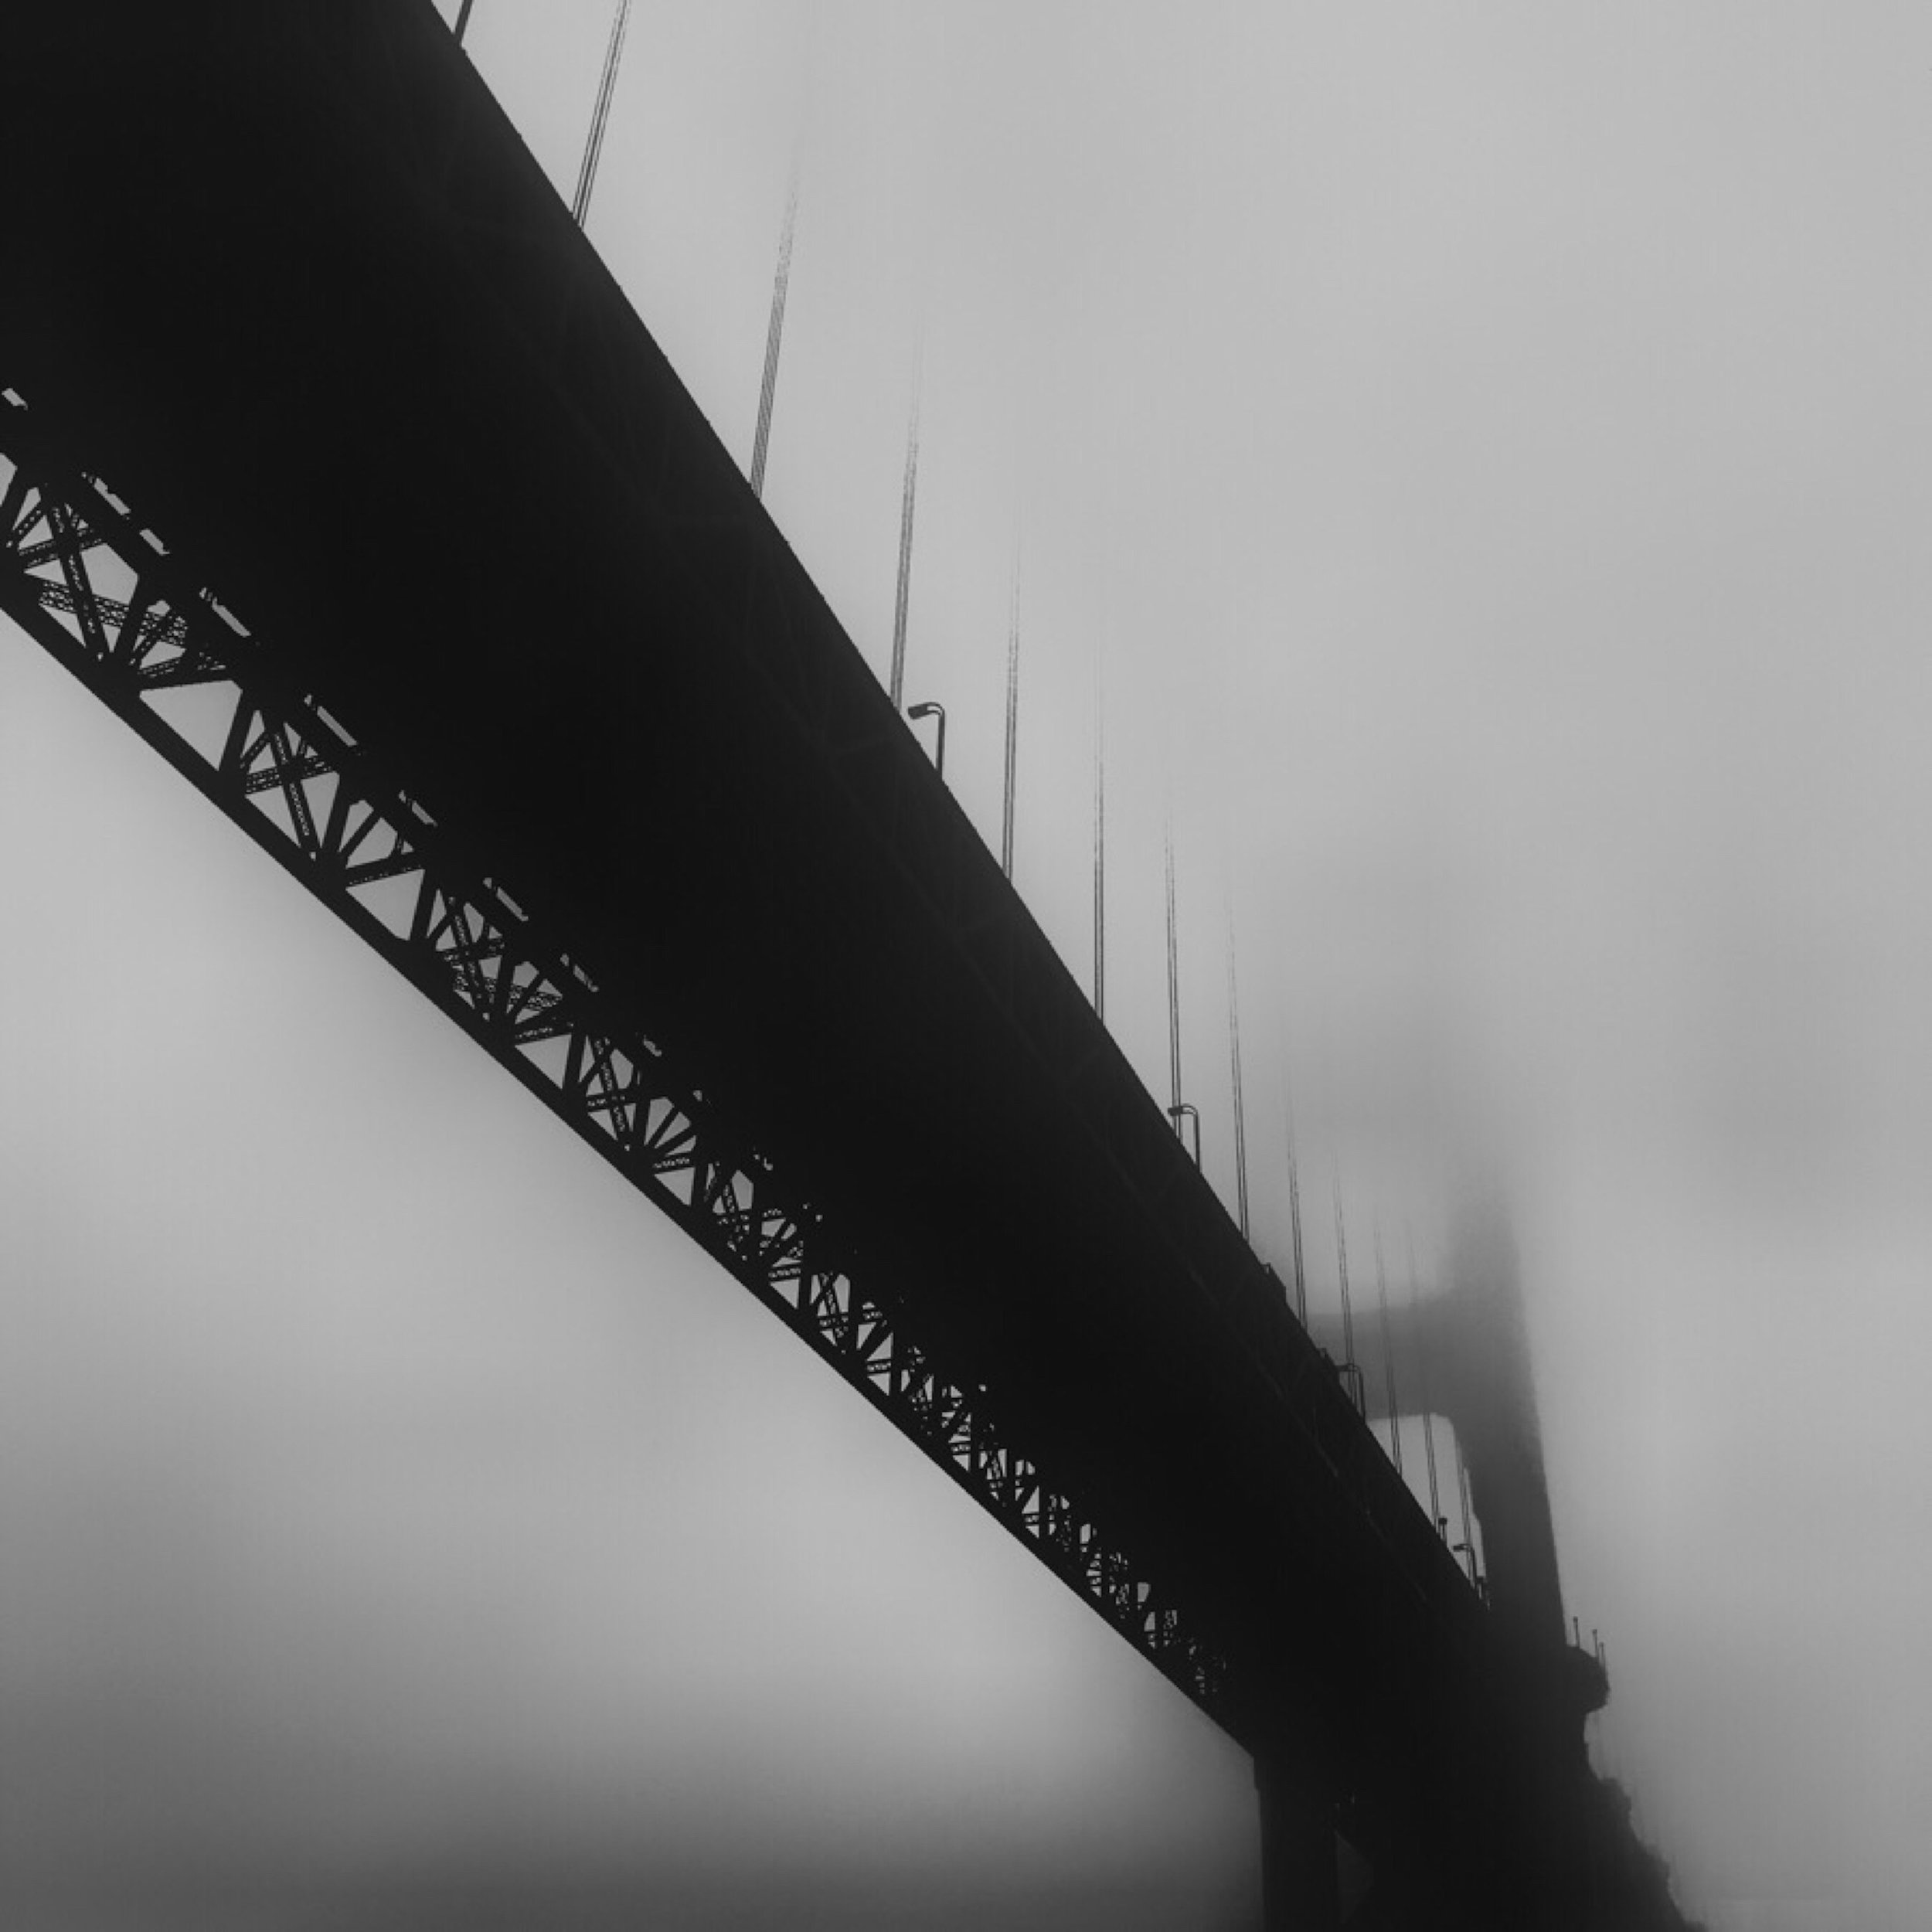 Fog City, 2018. Photograph by Lisa Waddell